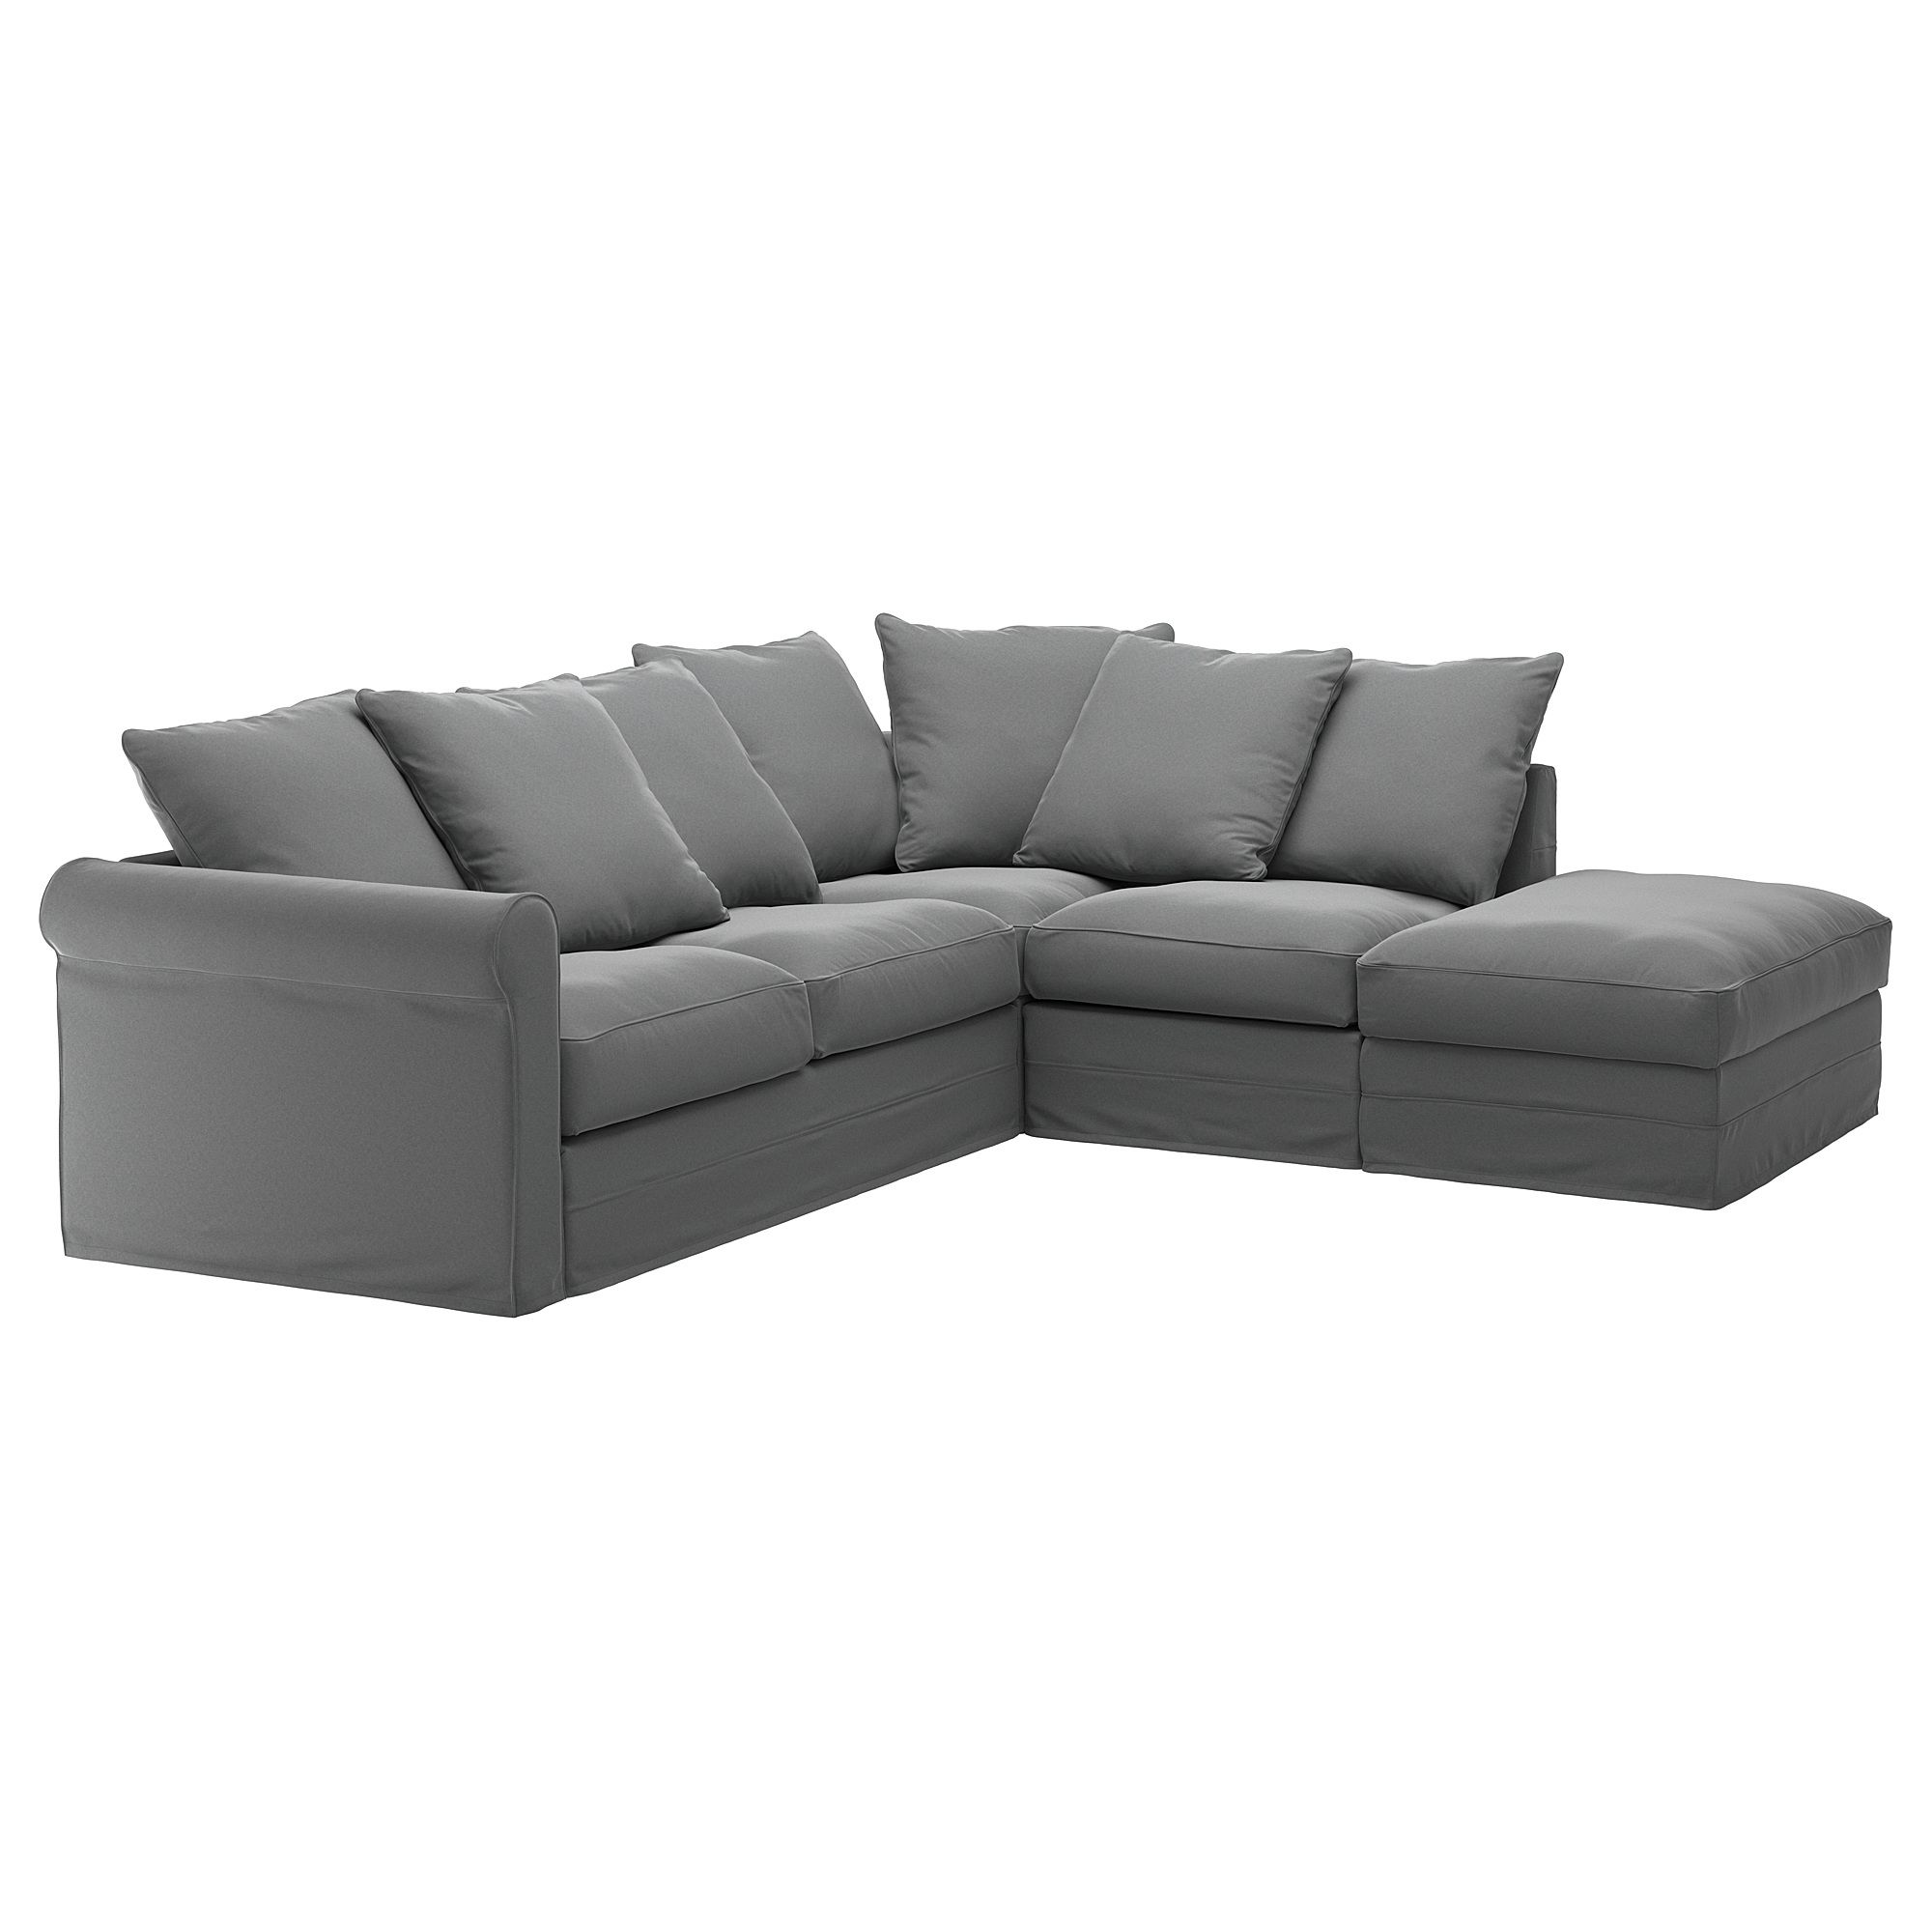 Ikea GrÖnlid Cover For Sectional 4 Seat With Open End Ljungen